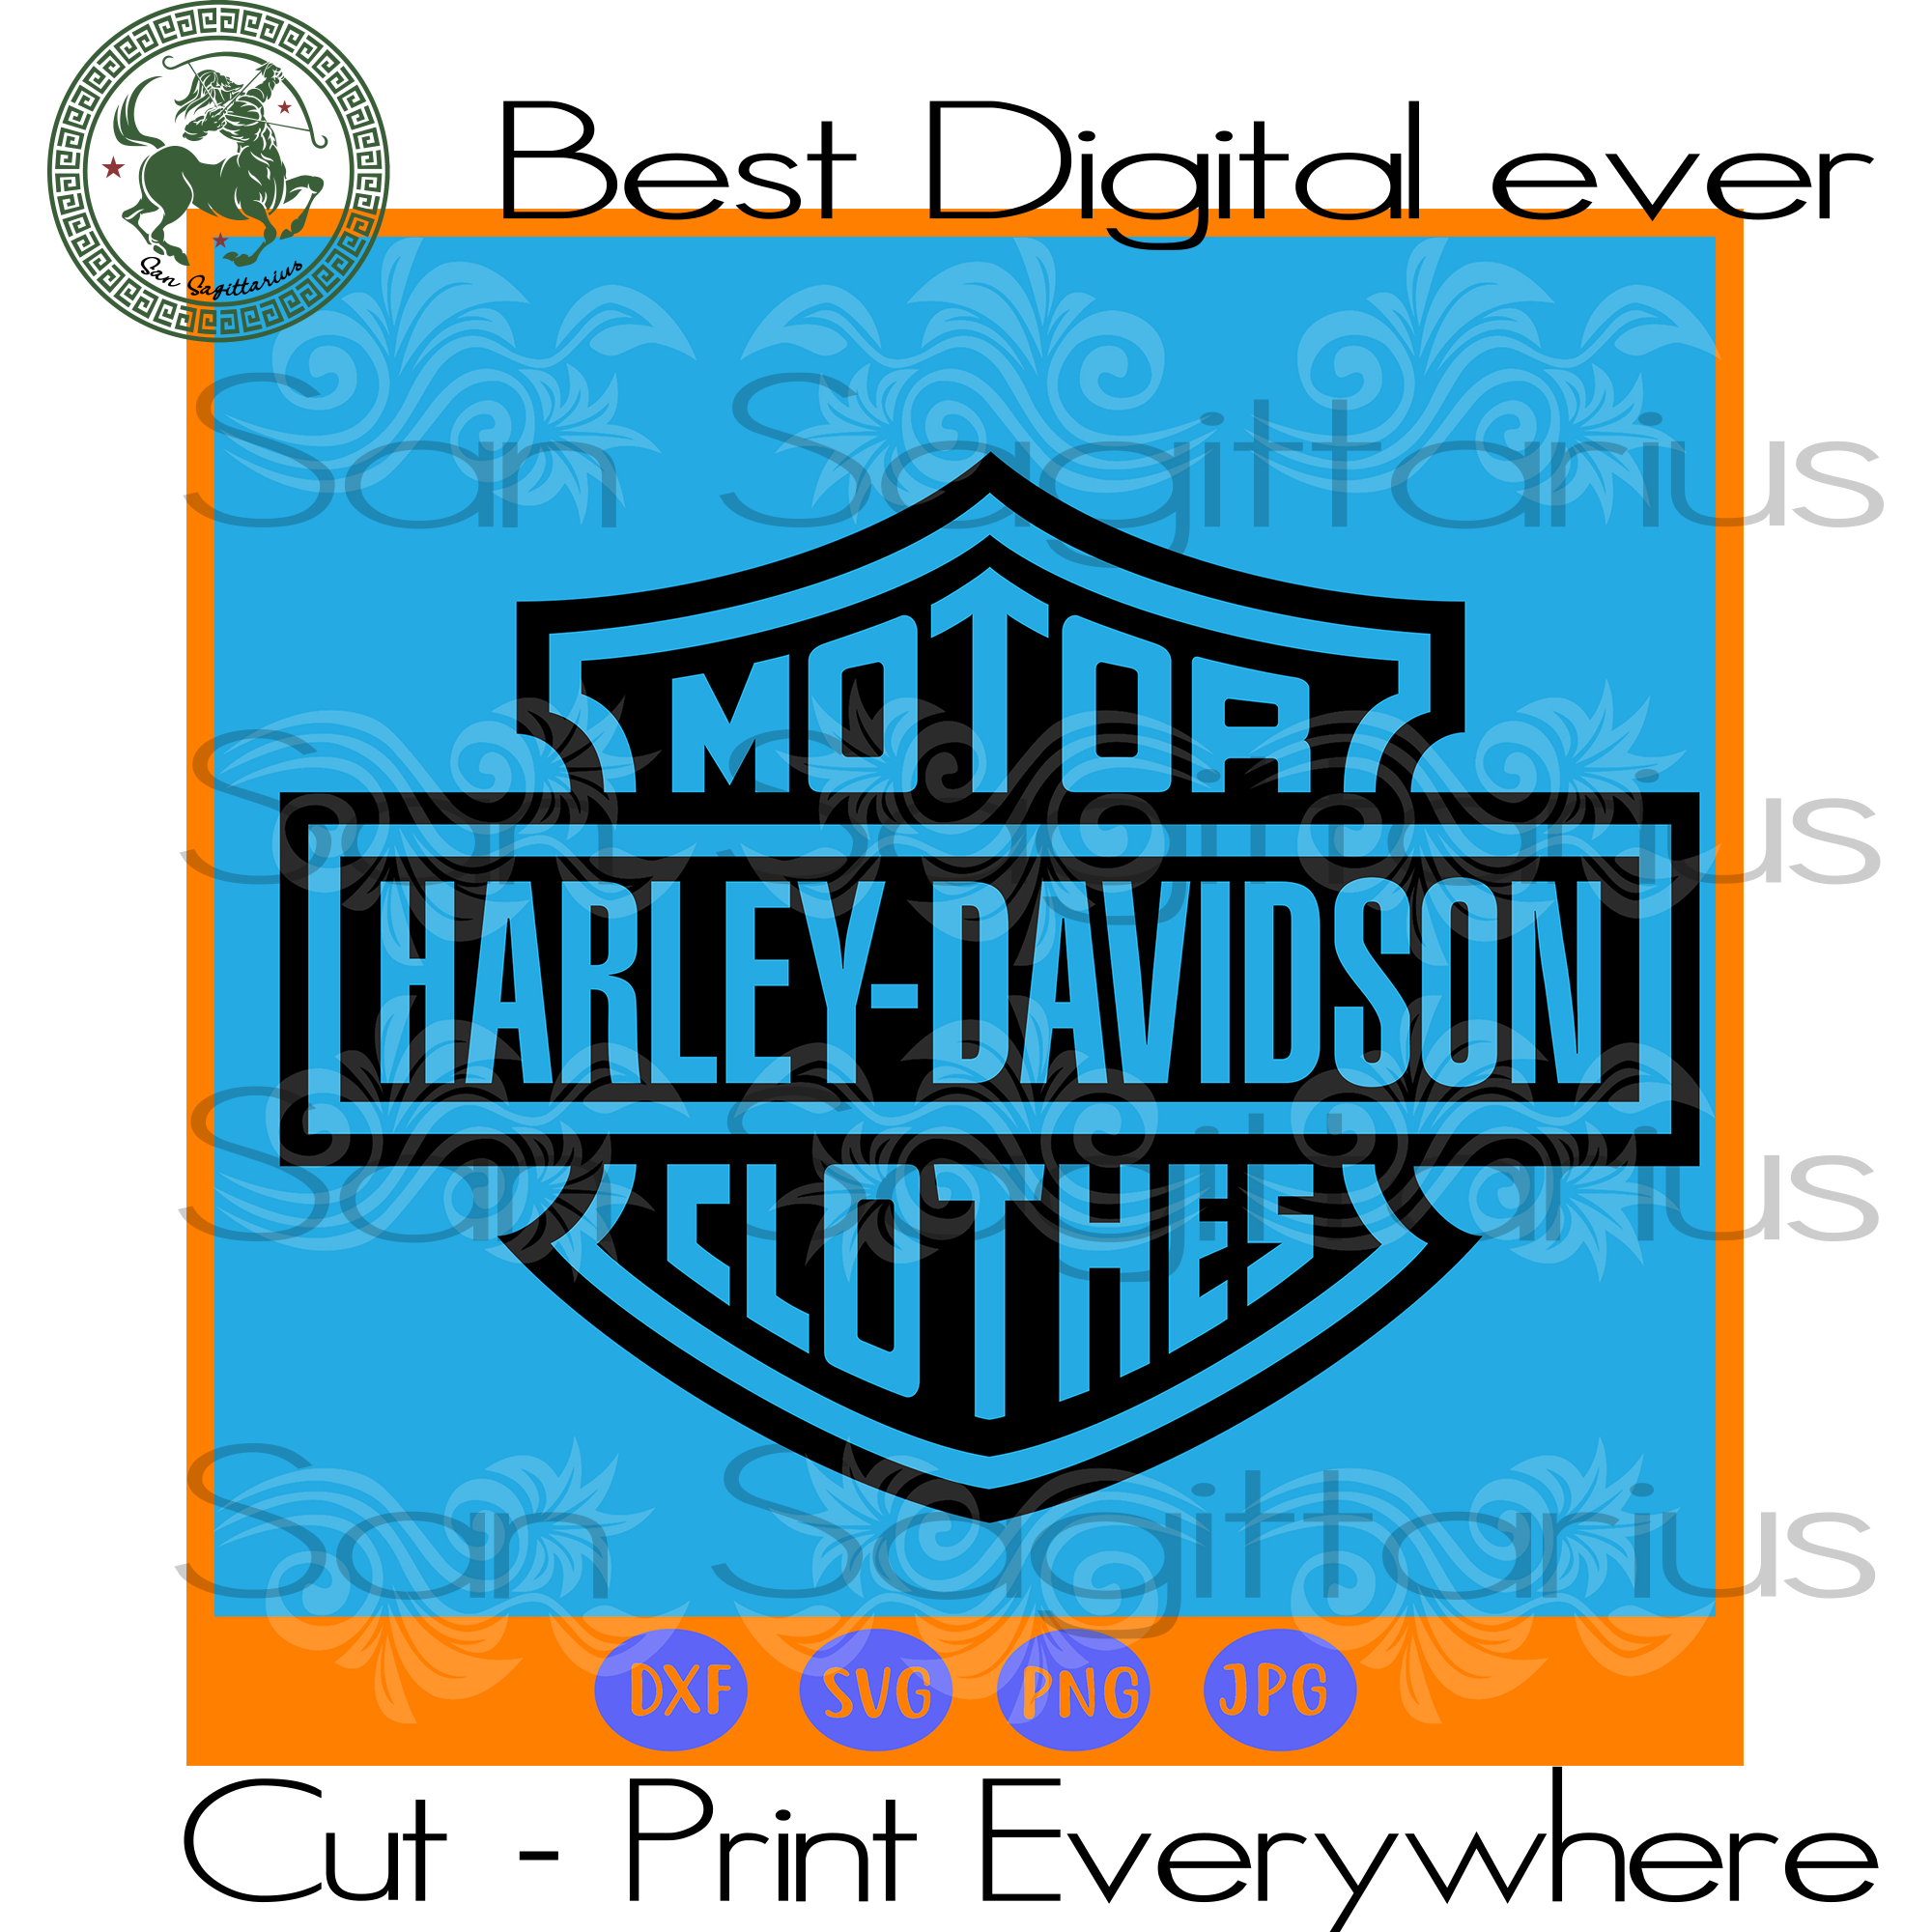 Harley davidson motorcycles logo SVG Files For Silhouette, Cricut Files, SVG DXF EPS PNG Instant Download